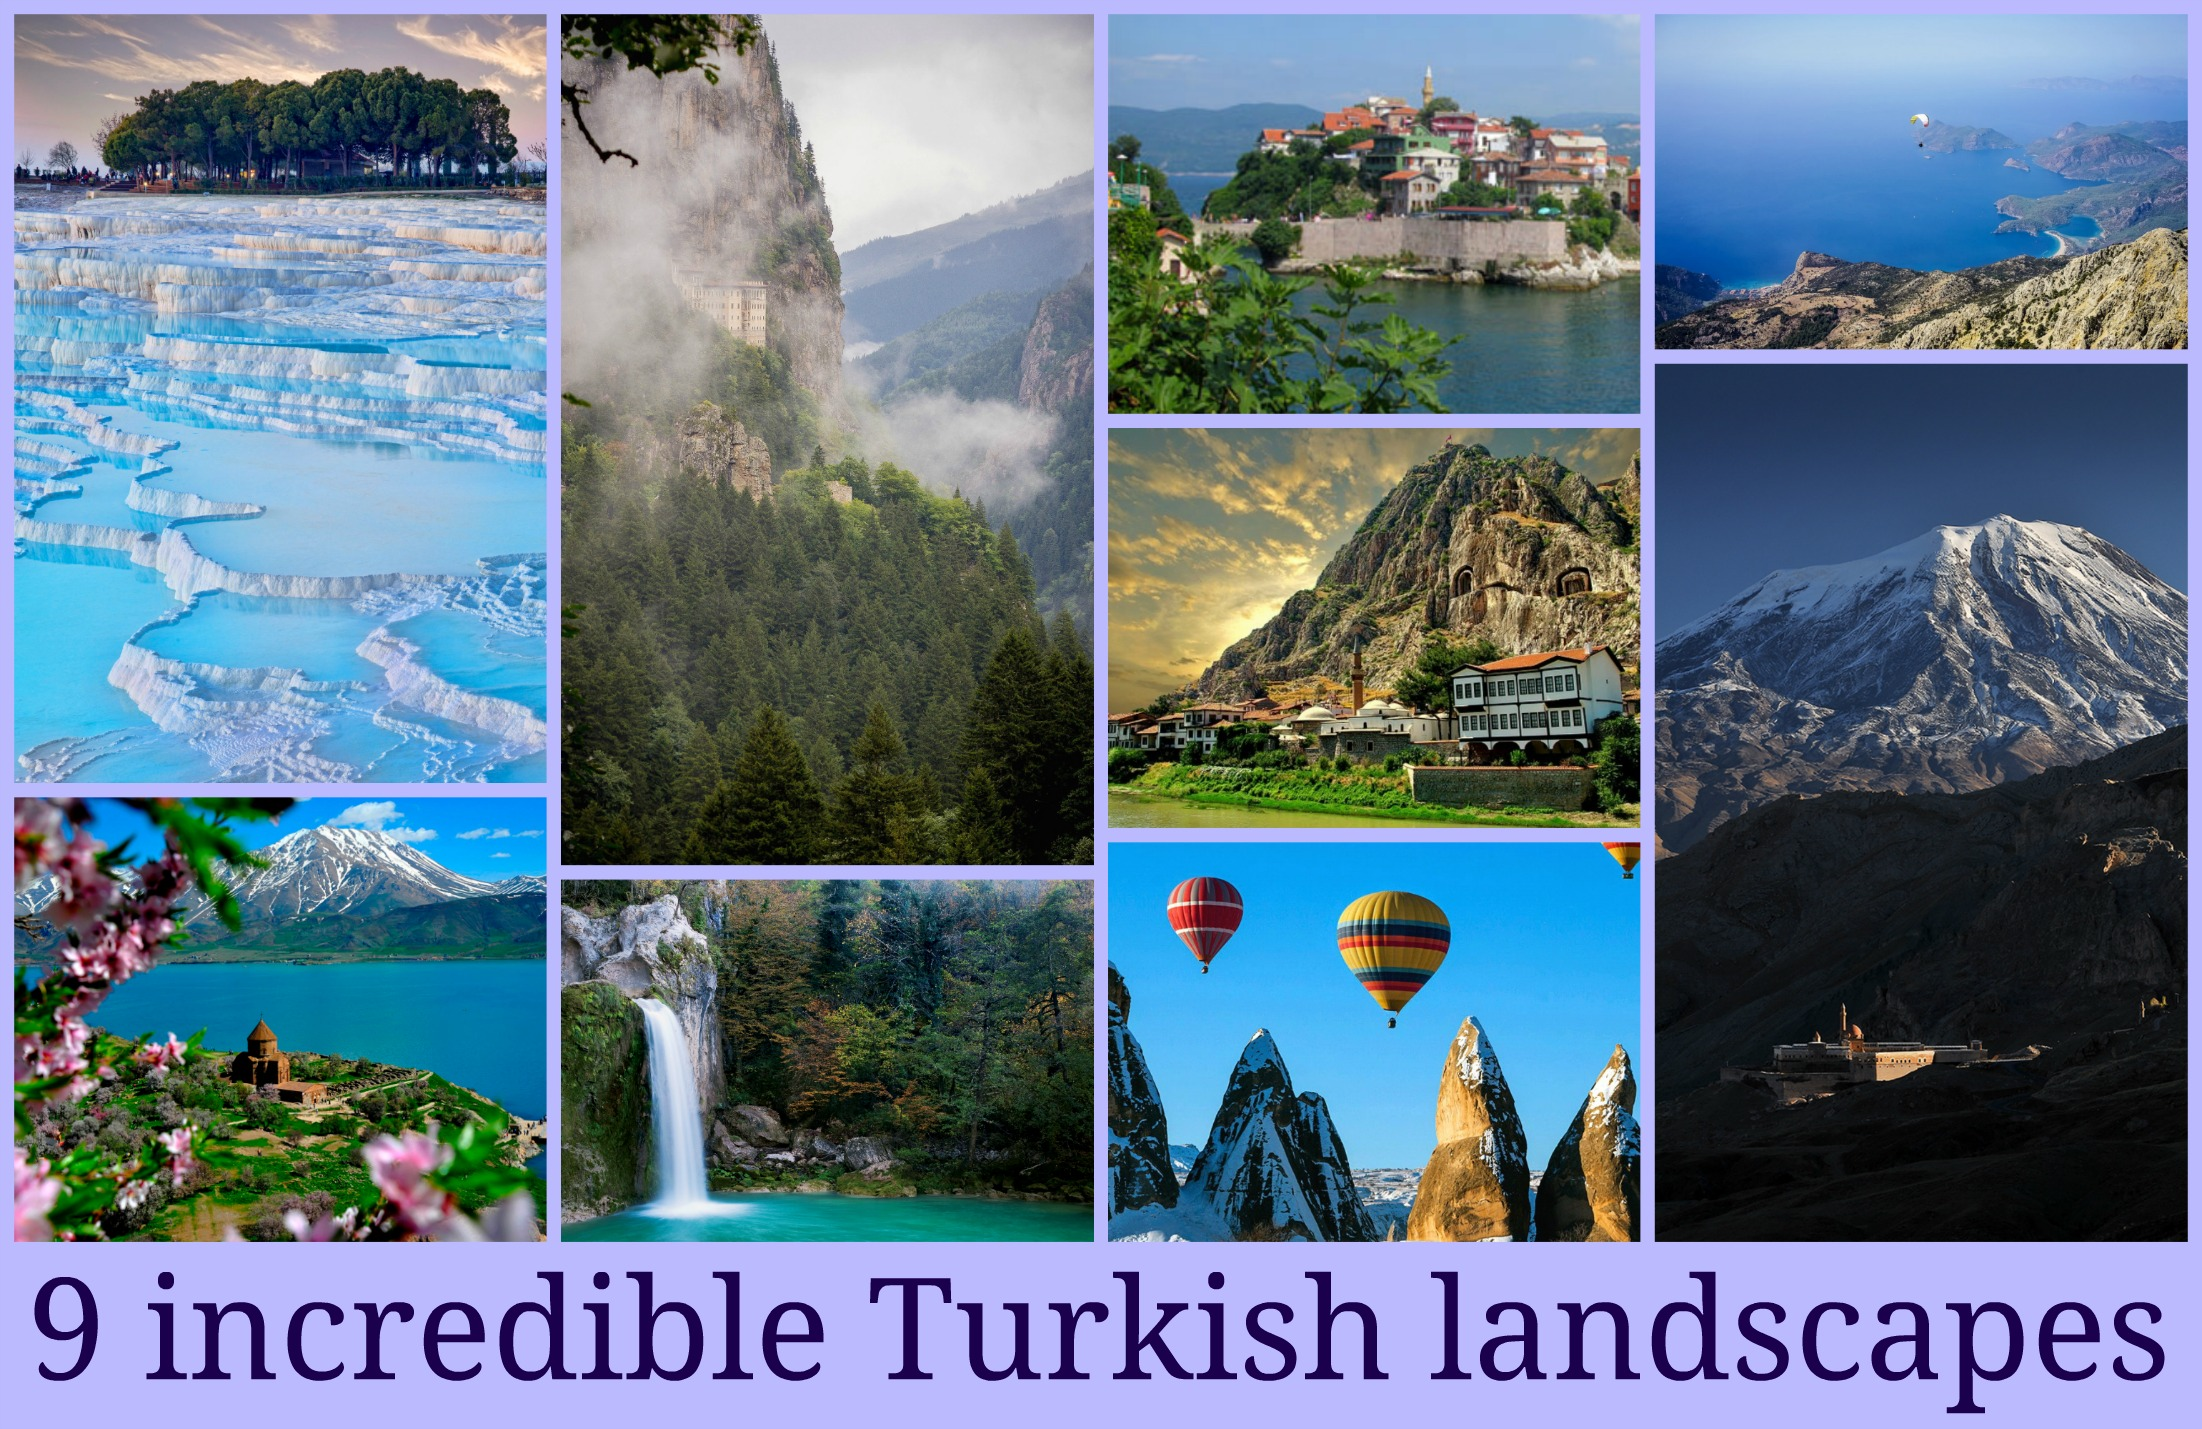 9 Incredible Turkish Landscapes Scenery Property Turkey